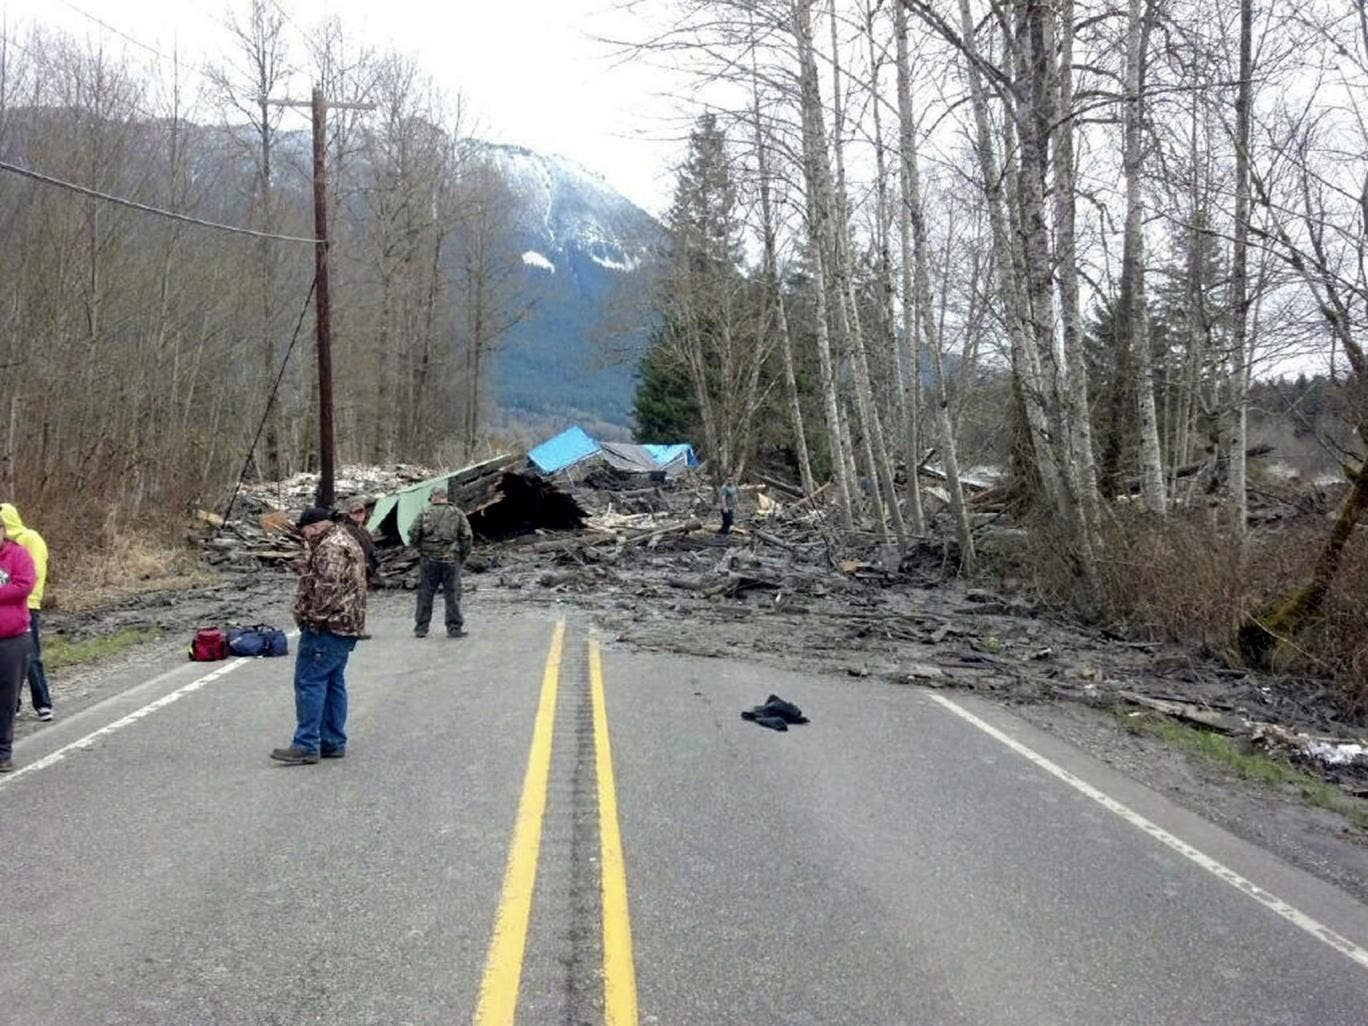 An image released by the Washington State Patrol shows emergency workers assisting at the scene of a mudslide which destroyed several homes and killed at least three people